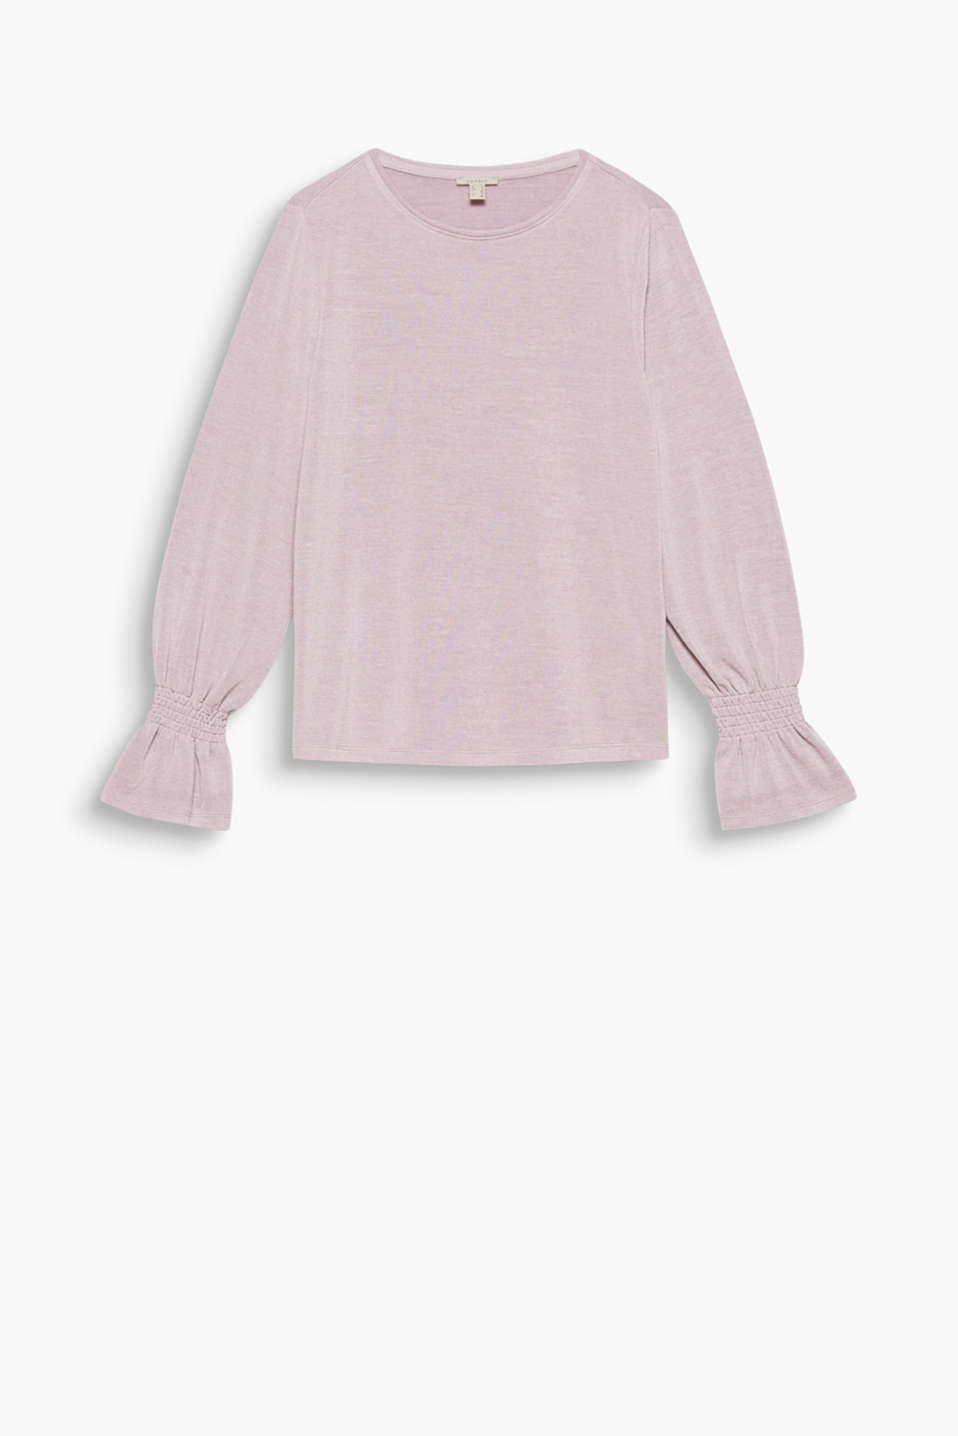 Pretty sleeve varieties create feminine flair: Long sleeve top with stretch and romantic flounces